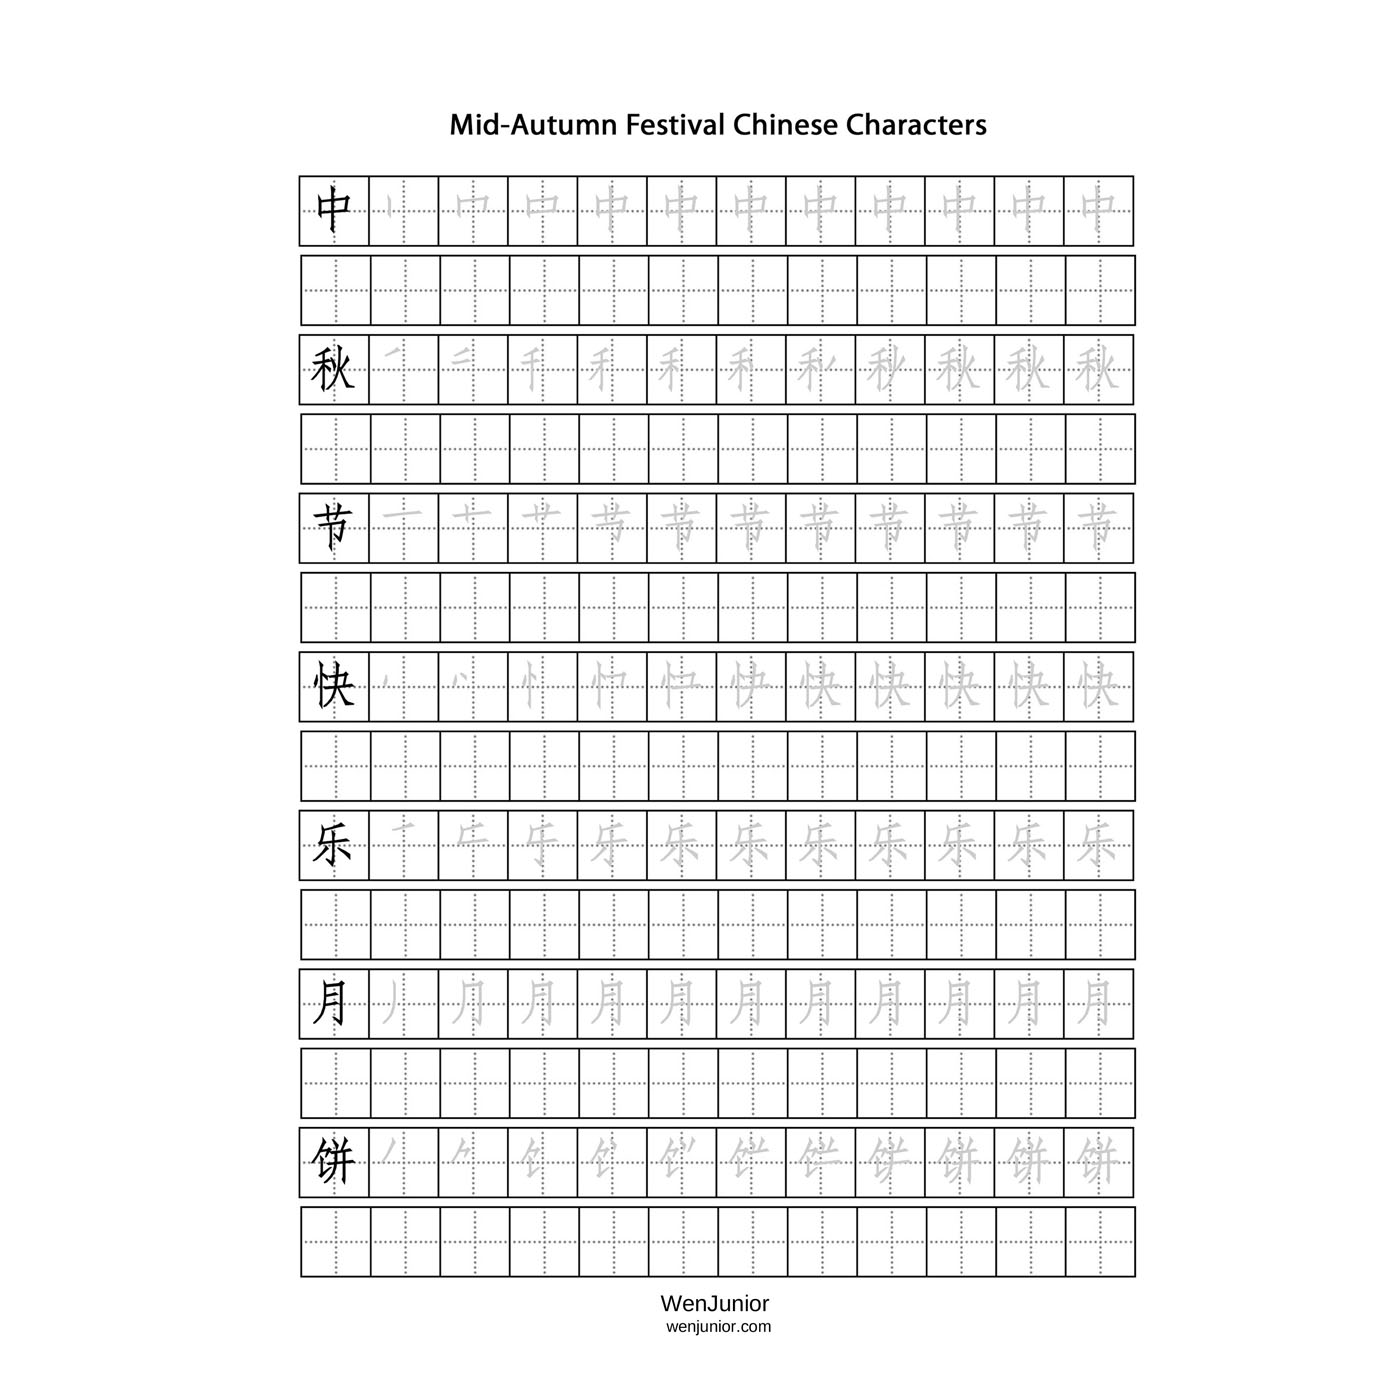 worksheet Confucius Says Worksheet mid autumn festival chinese characters handwriting worksheet wenjunior worksheet